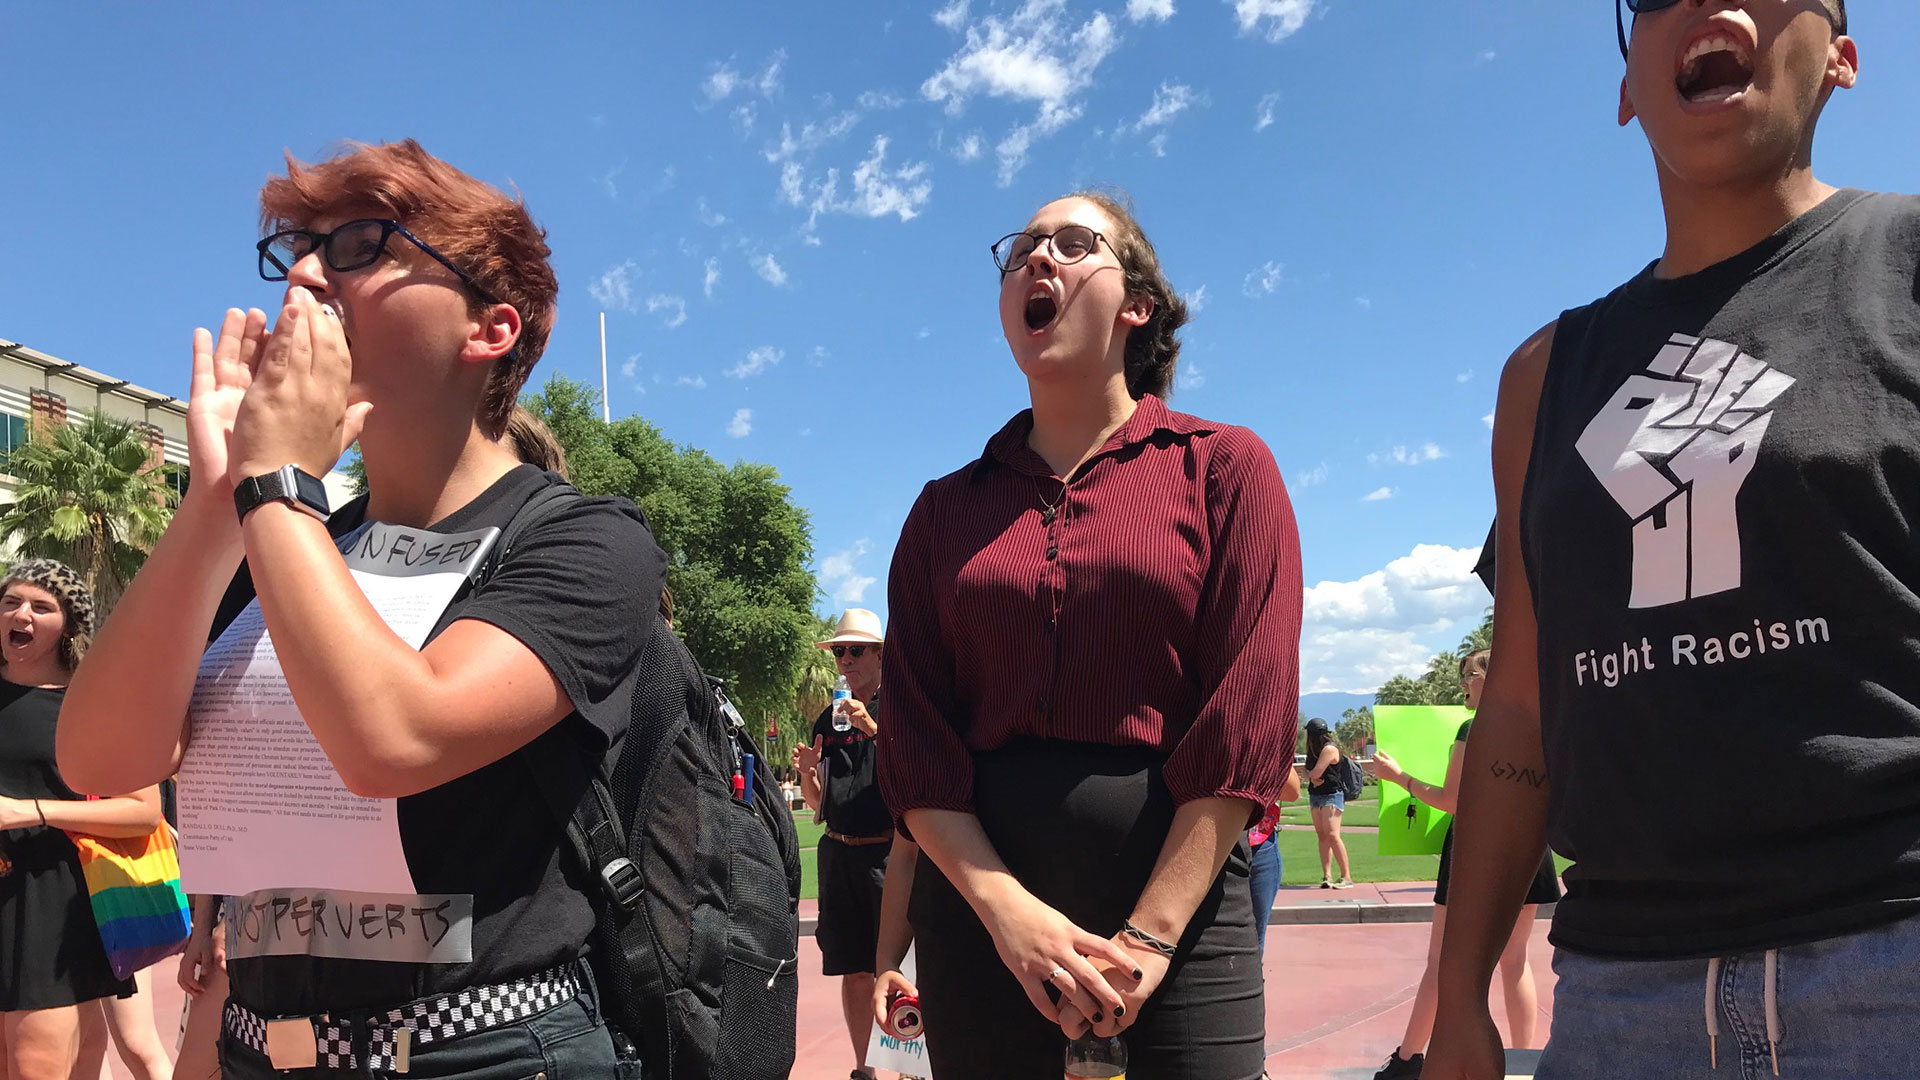 Demonstrators call for the firing of a professor at the University of Arizona over a homophobic letter, Sept. 18, 2019.